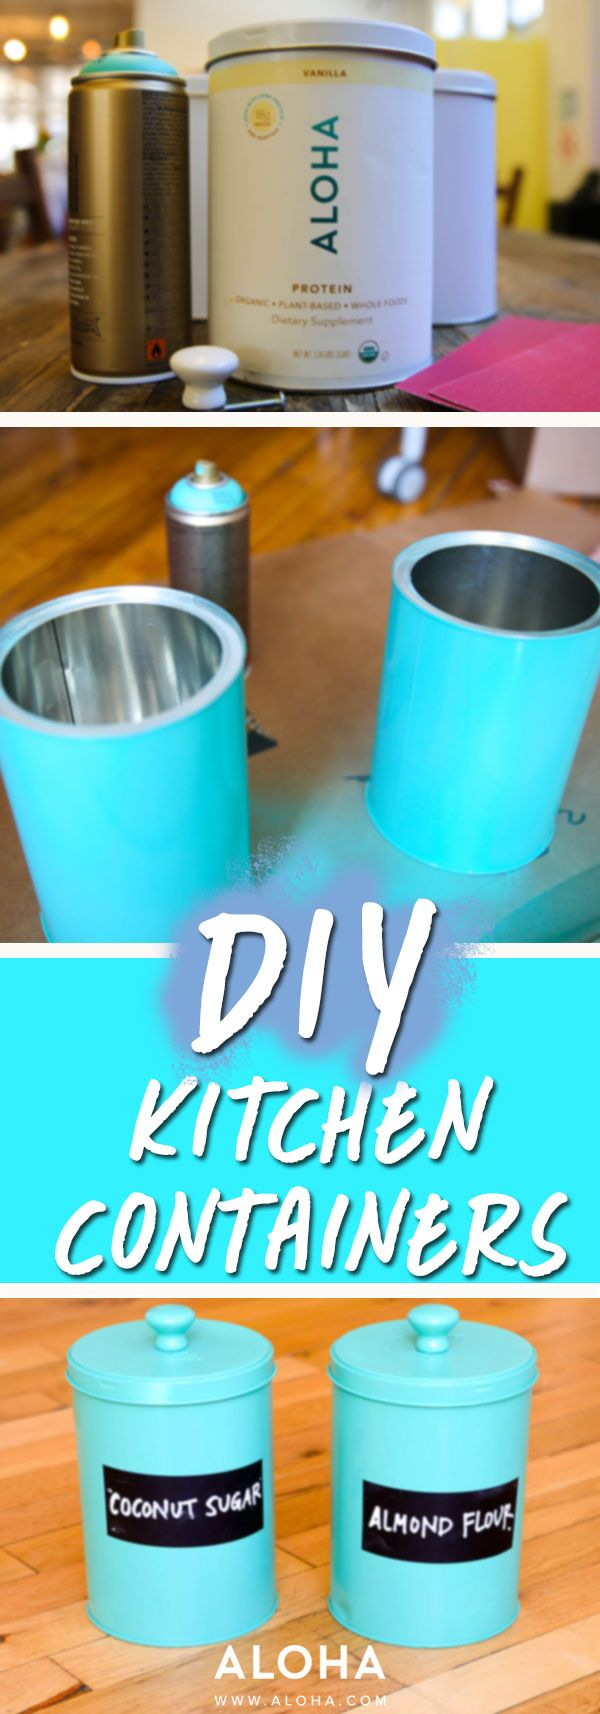 Reuse Your Aloha Protein Tins For Adorable Kitchen Containers We Show You How